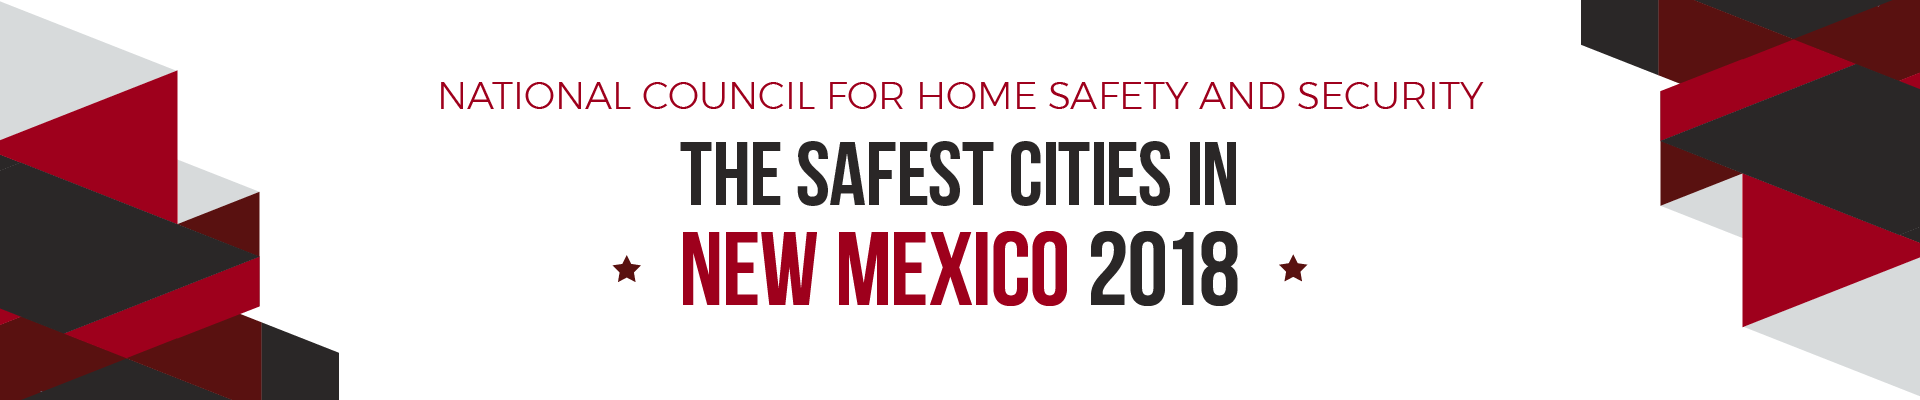 safe cities new mexico 2018